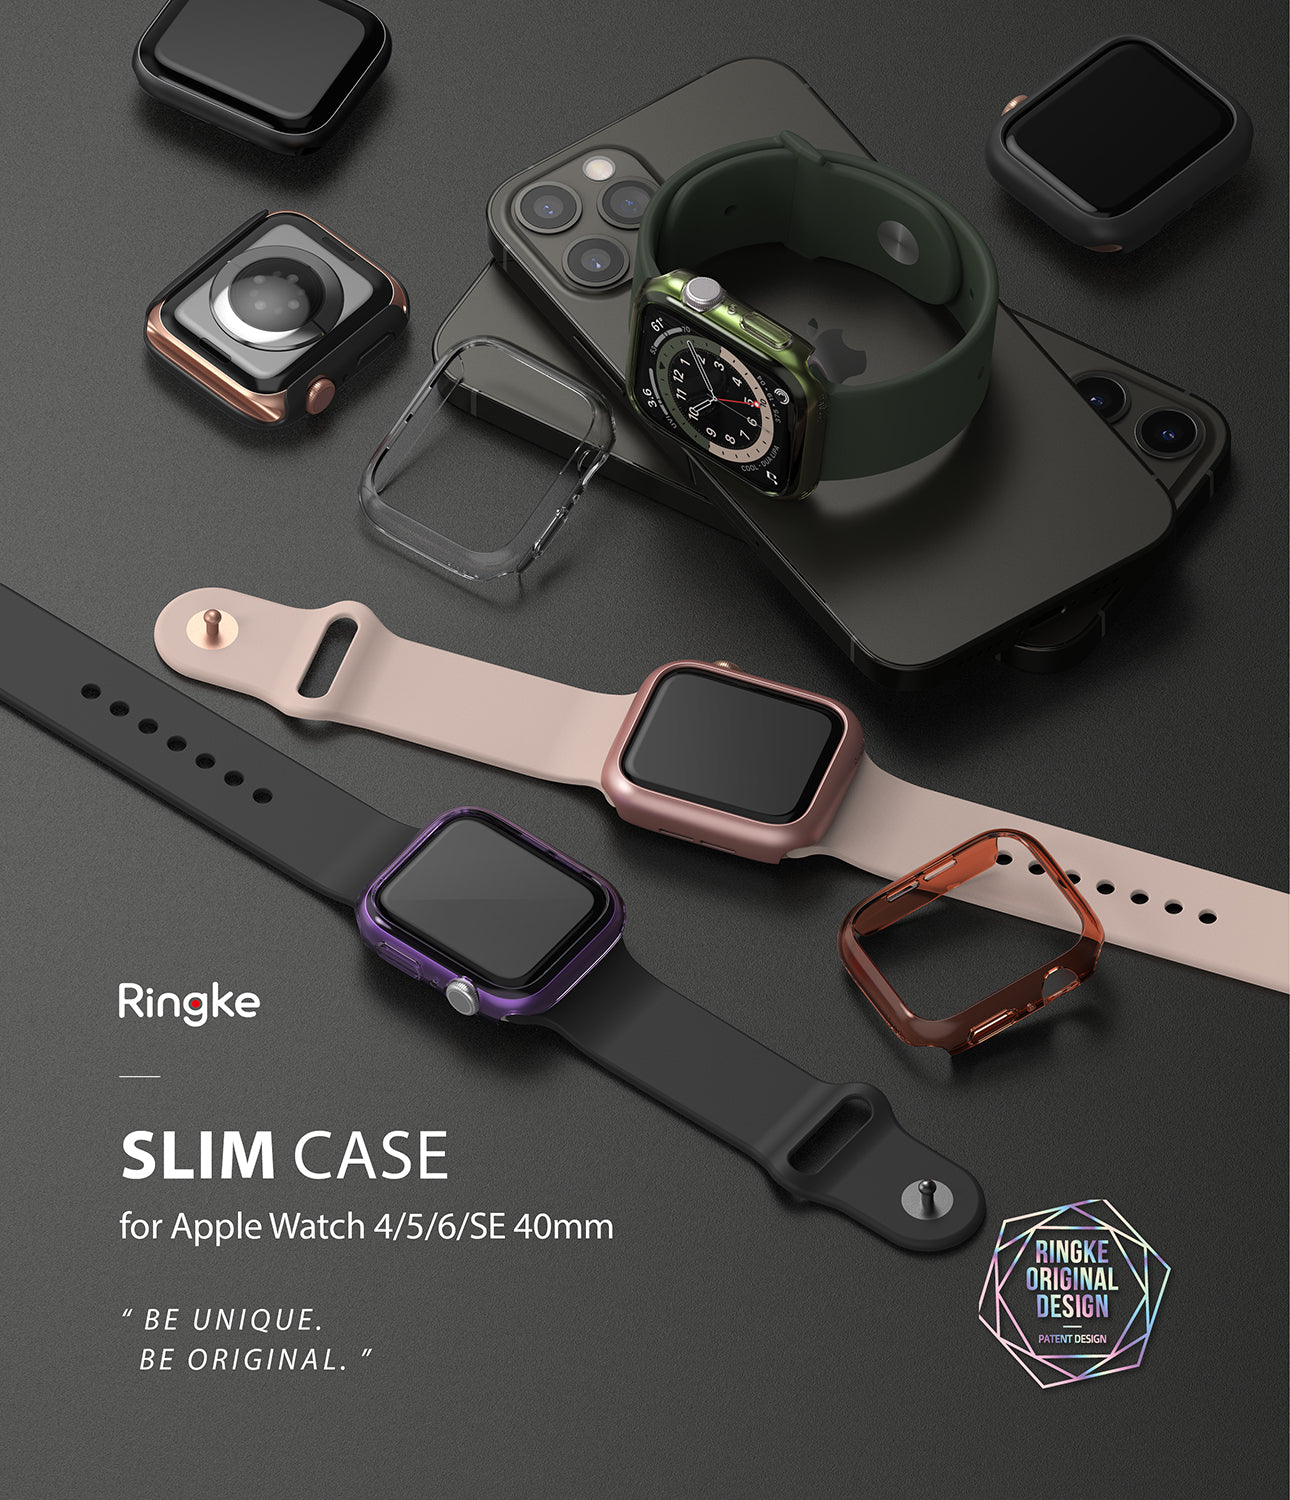 apple watch 6, apple watch 5, apple watch 4, apple watch se case - 40mm - ringke slim